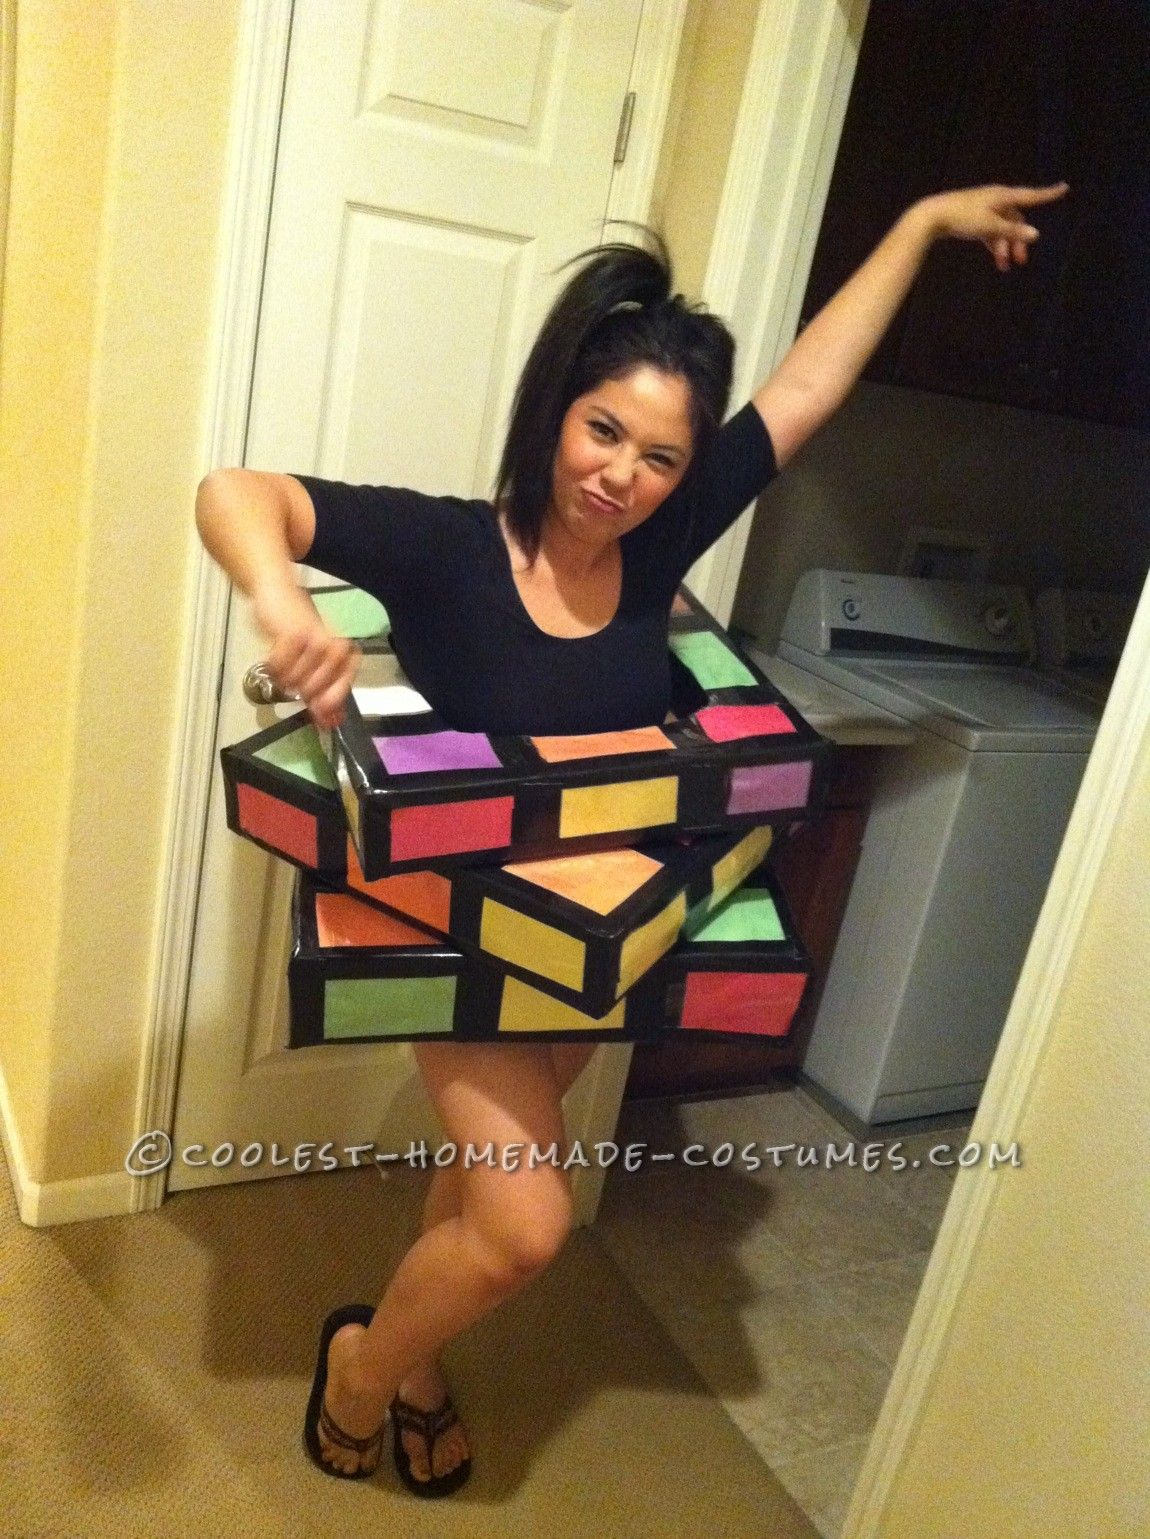 great last minute rubiks cube costume awesome halloween costumeshomemade - Funny Home Made Halloween Costumes